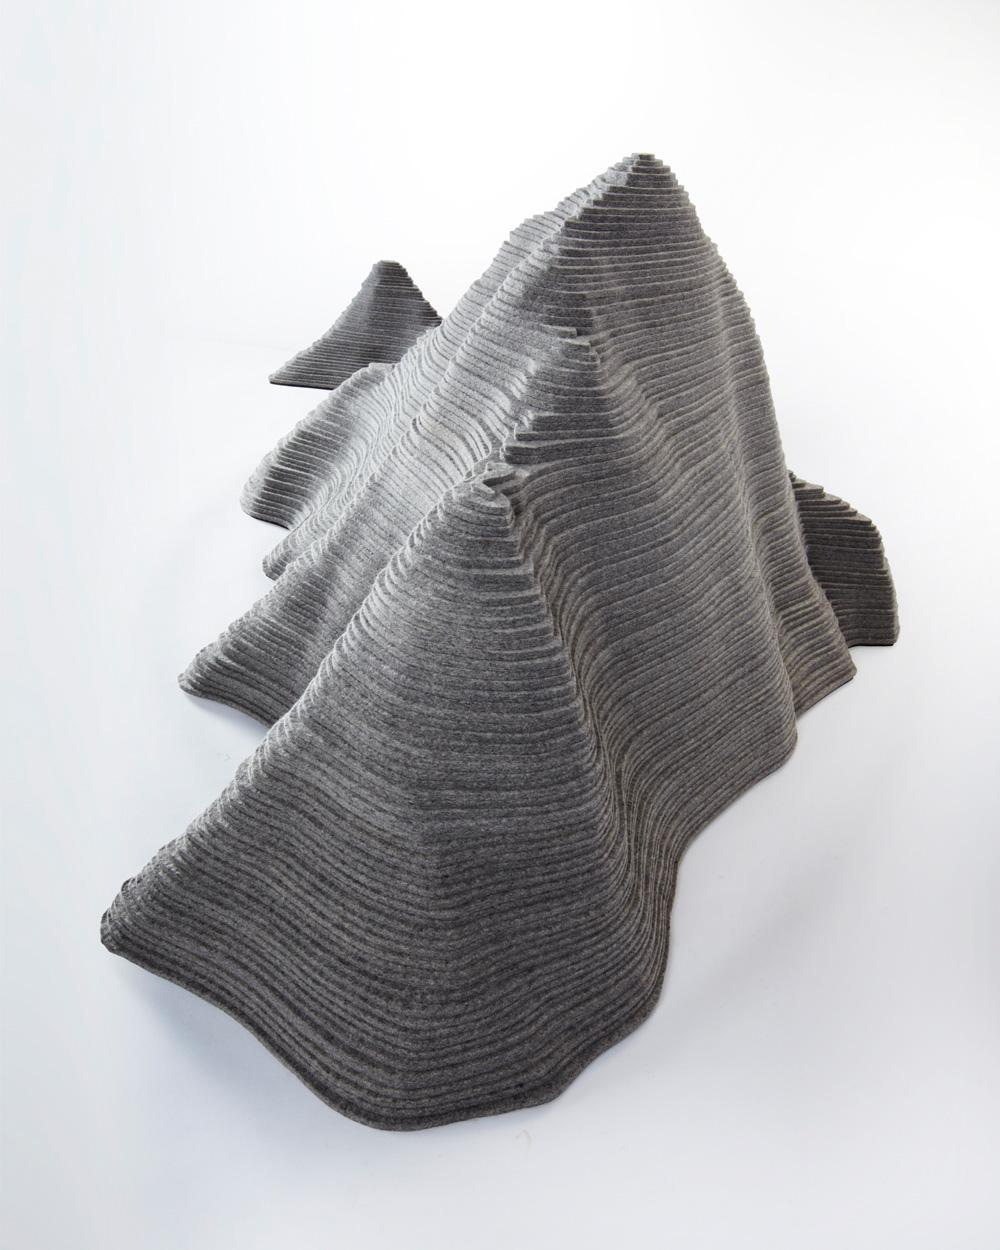 http://mocoloco.com/fresh2/upload/2012/01/felt_mountaintops_by_joy_charbonneau/felt_mountaintops_joy_charbonneau_2b.jpg